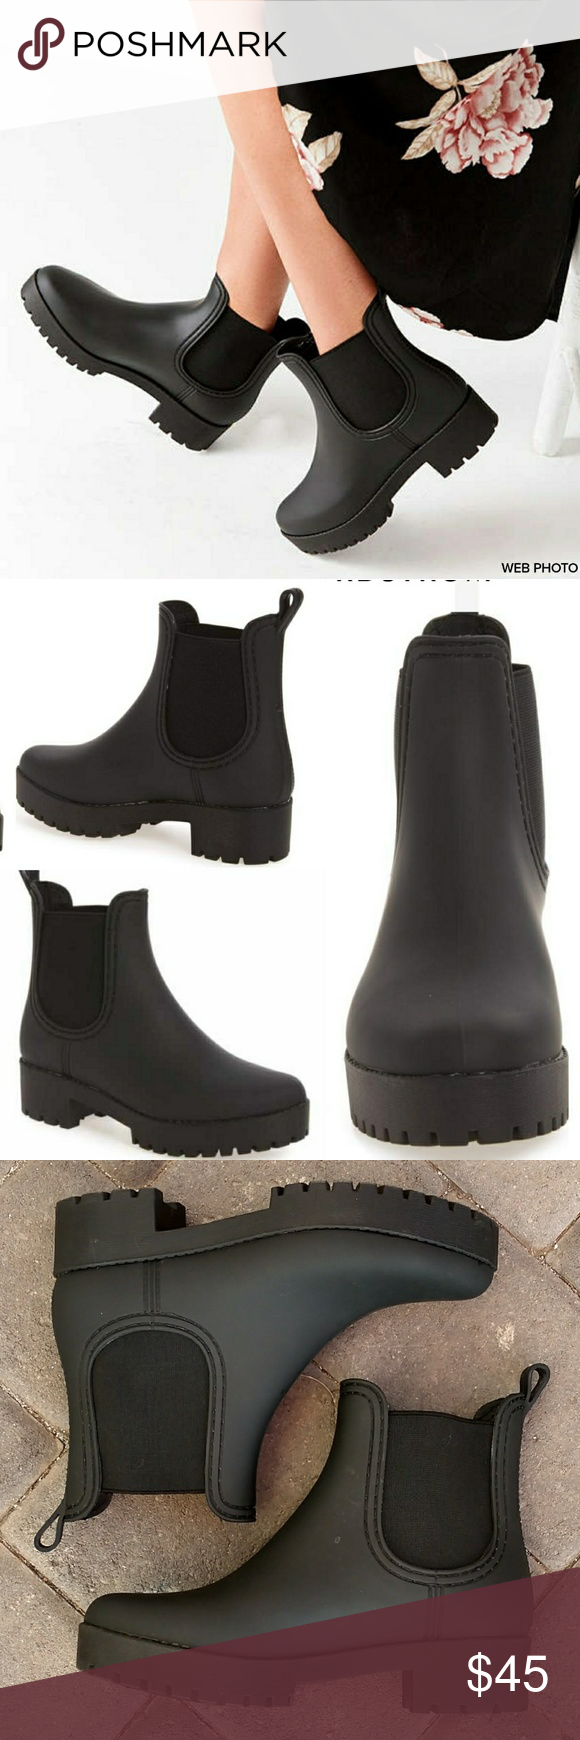 22bc4c996a4 JEFFREY CAMPBELL Cloudy Rain Boot A Chelsea rain boot cut from is lifted by  a platform and lugged sole so you can take on wet weather …